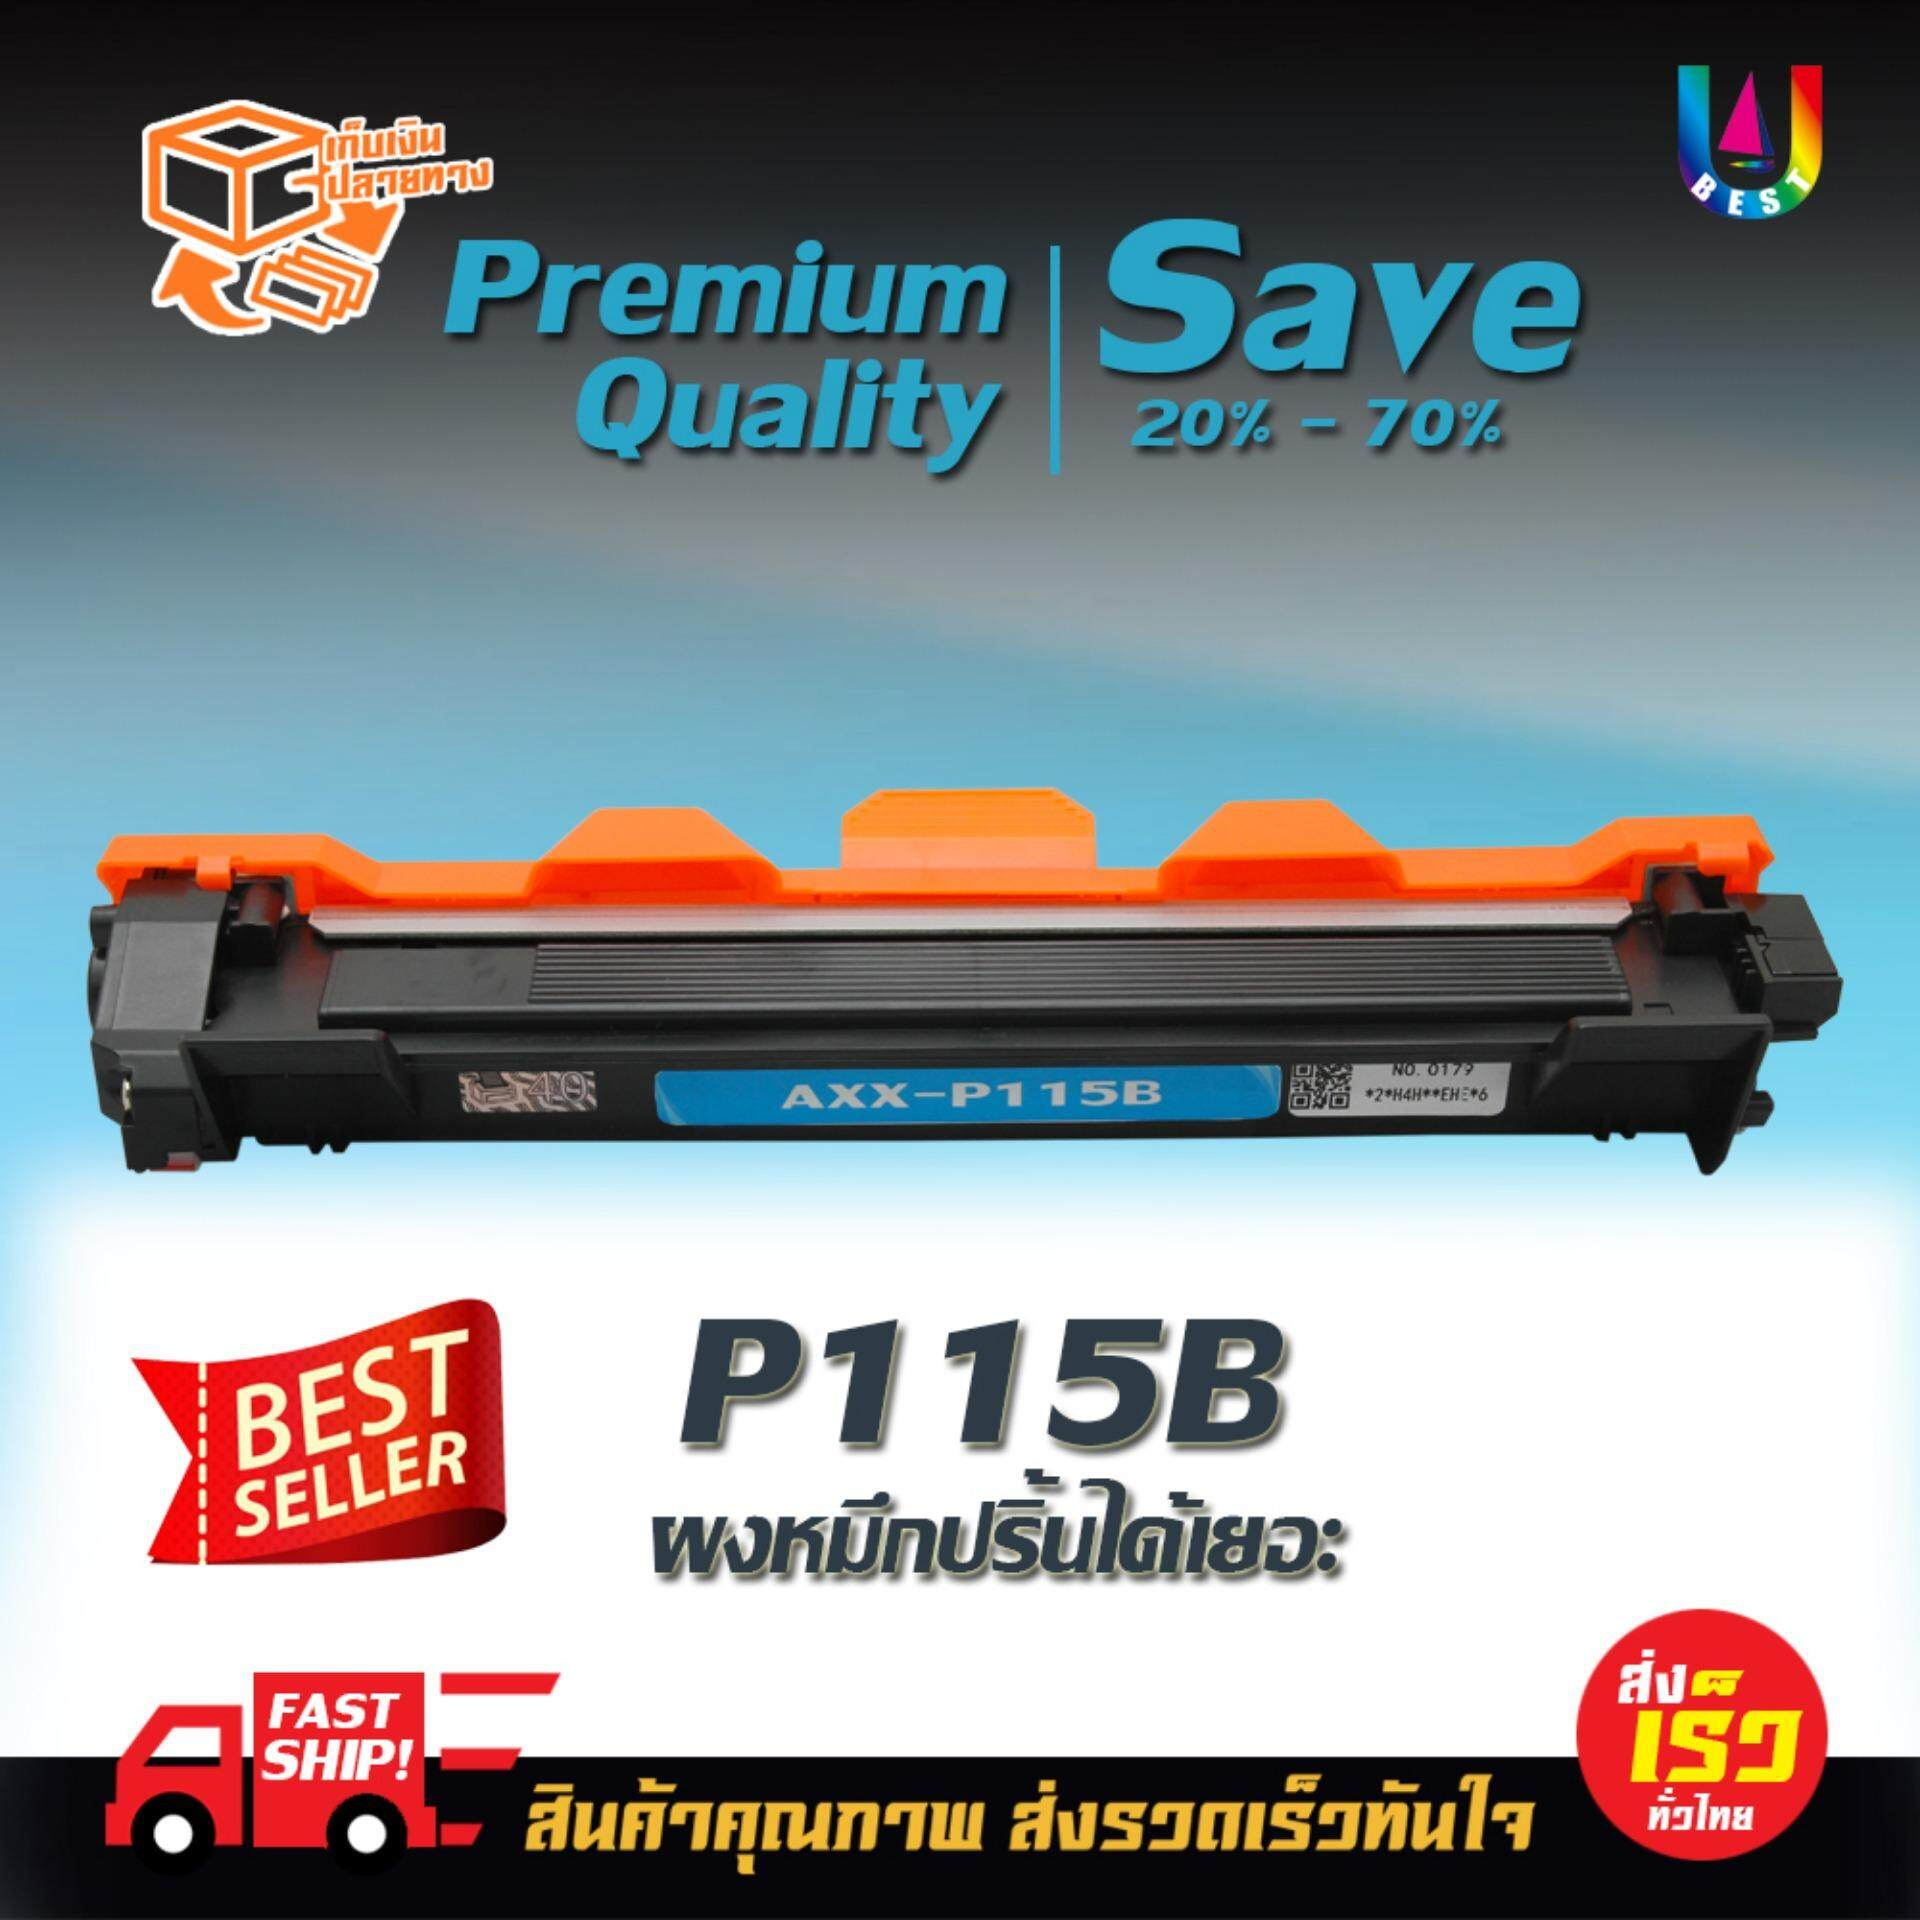 ขาย Fuji Xerox P115B Ct202137 For Printer Fujixerox Docuprint P115B P115W M115B M115Fs M115W Best4U กรุงเทพมหานคร